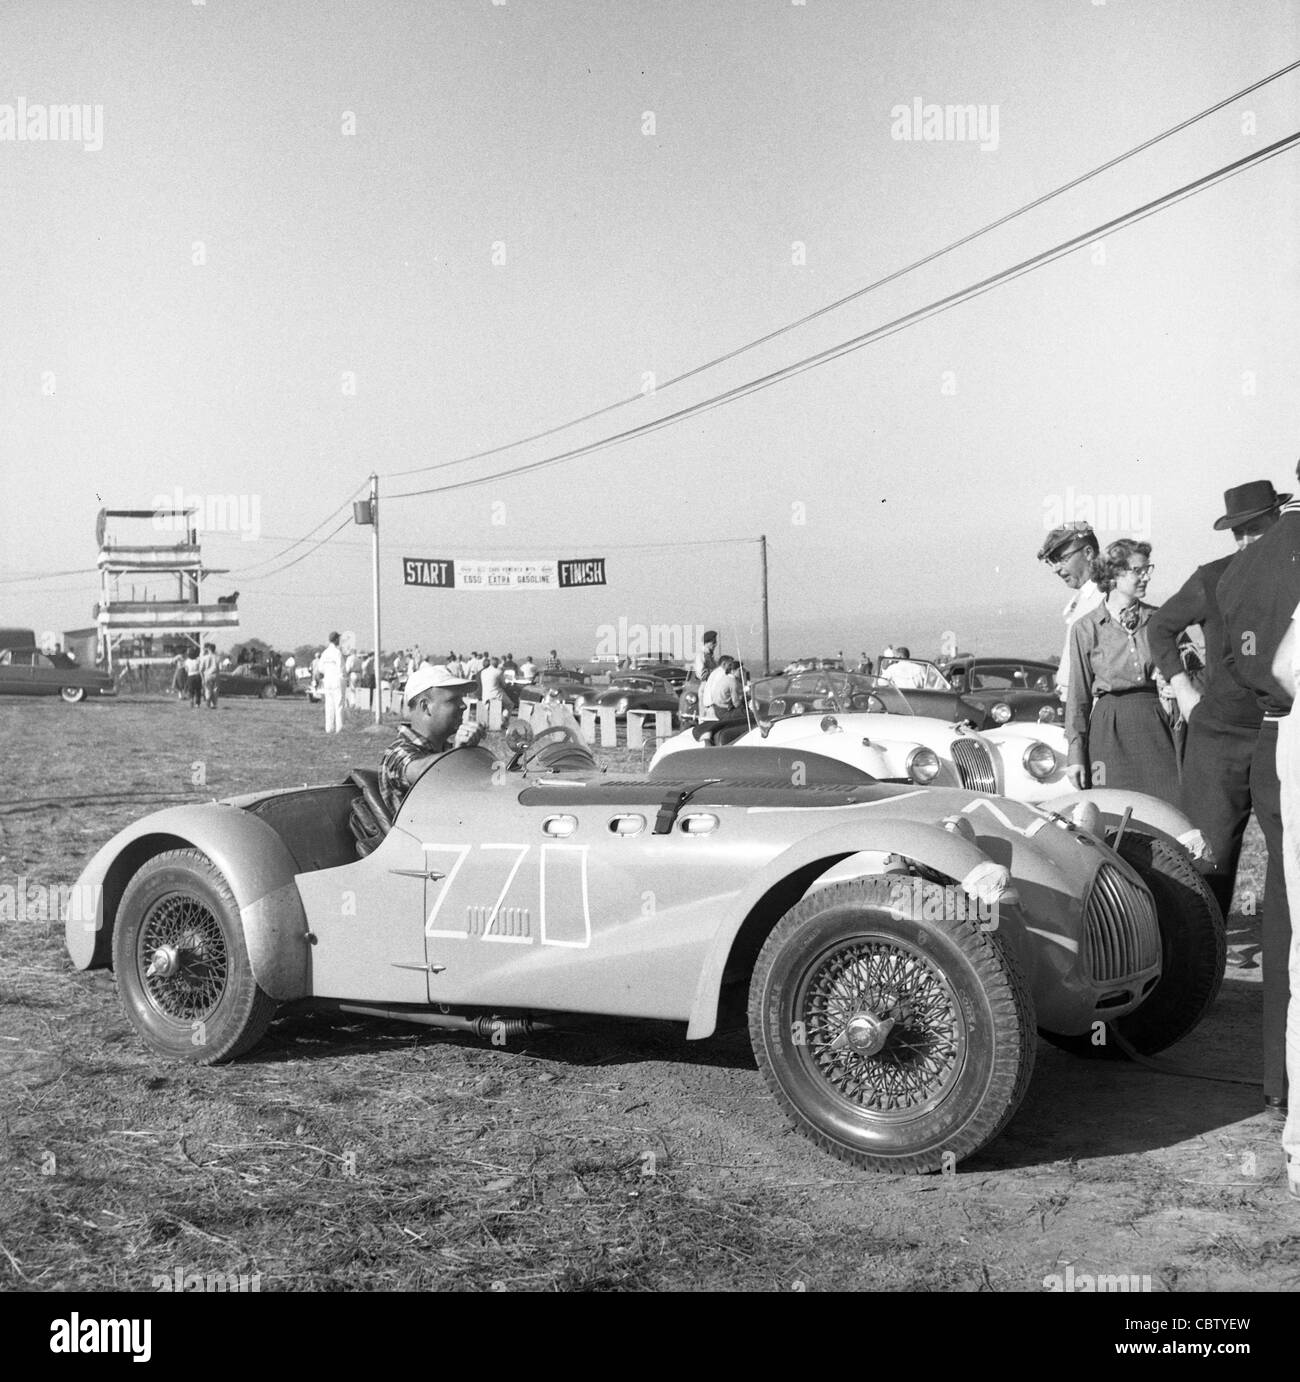 Charmant Sports Car Club Of America Races From The Early 1960s Or Late 1950s. Allard